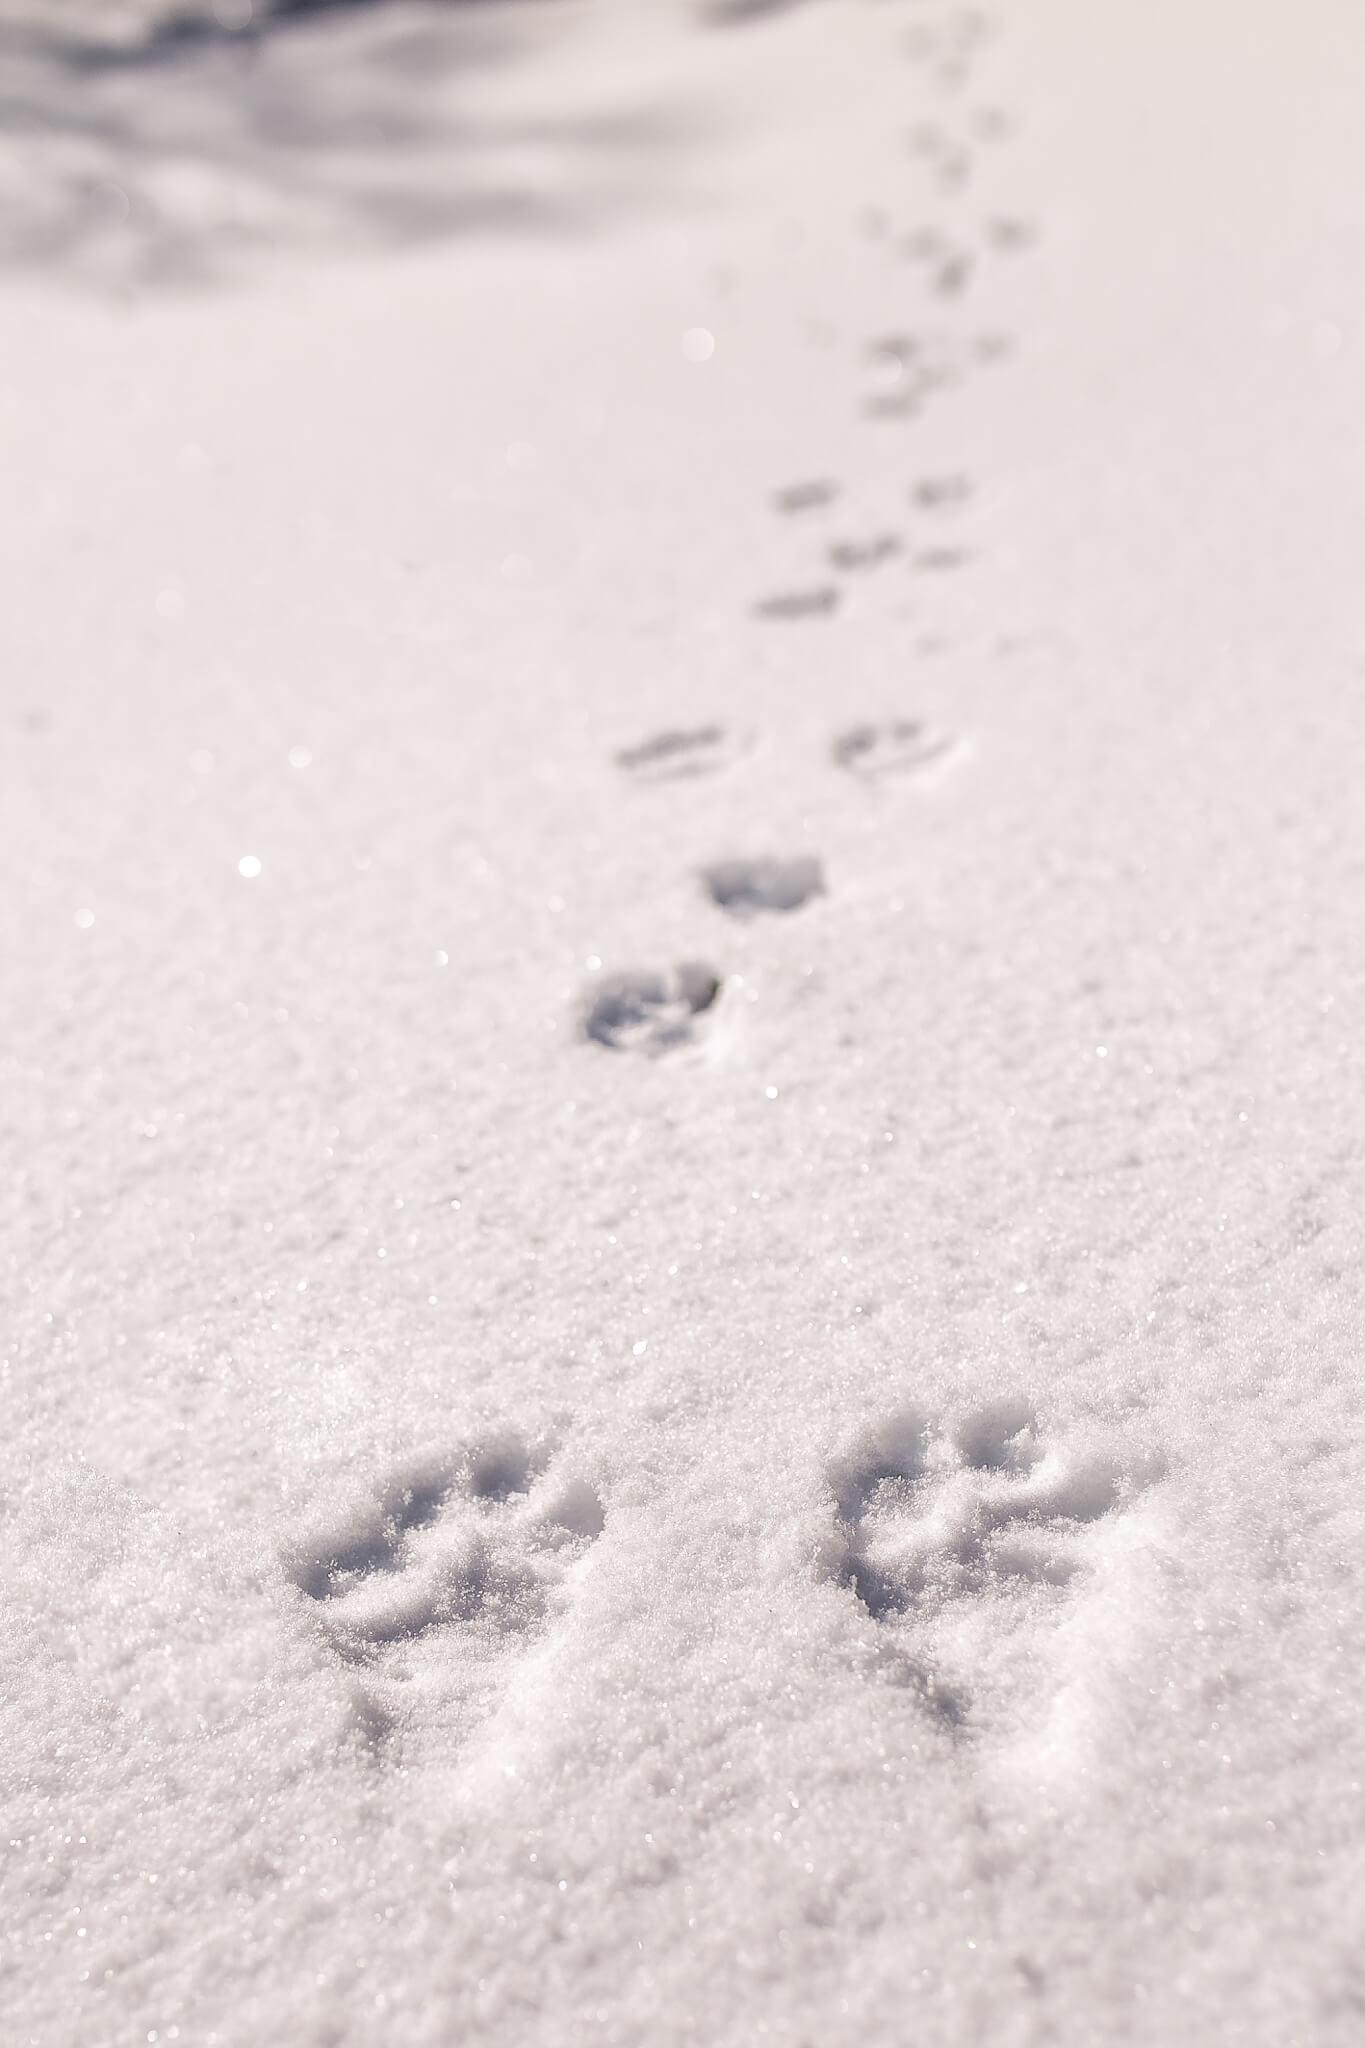 Tracks in the snow left by a hare